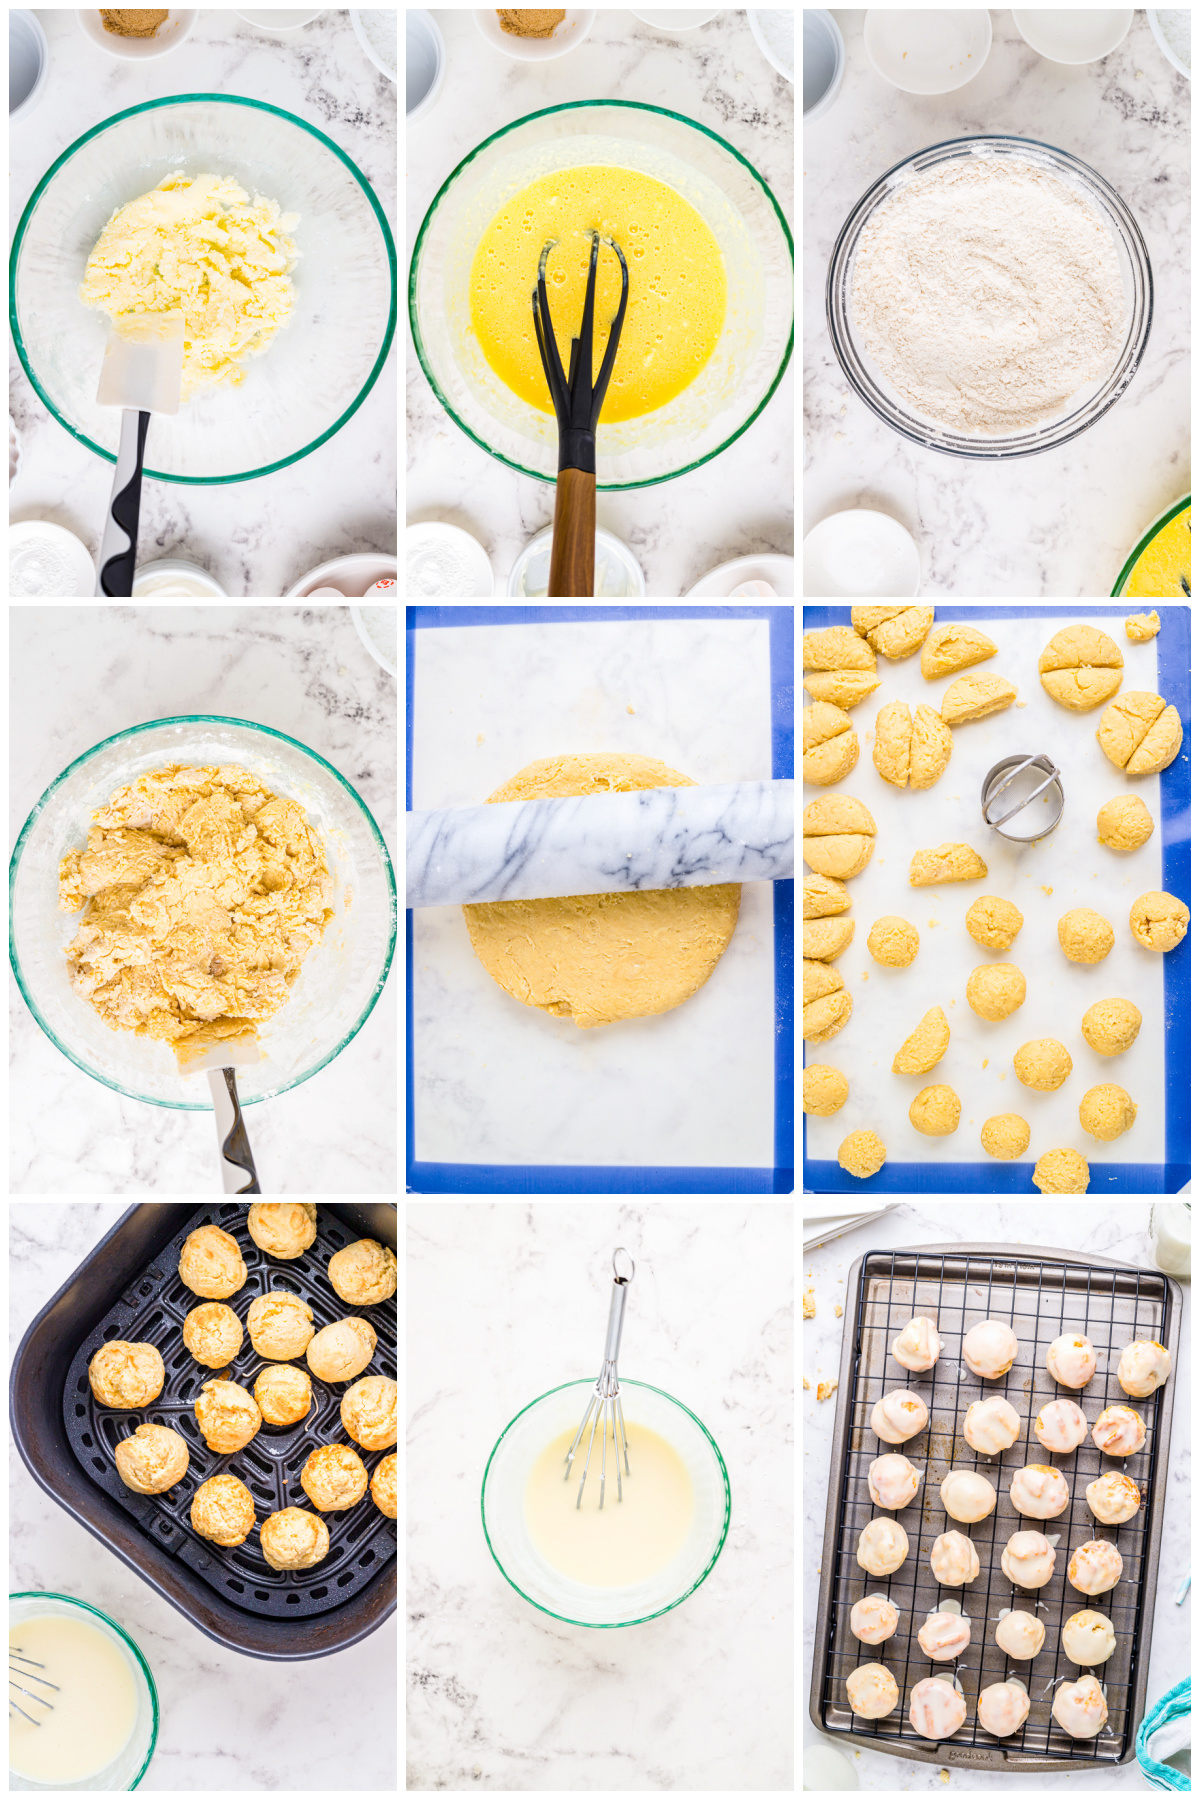 Step by step photos on how to make Munchkins